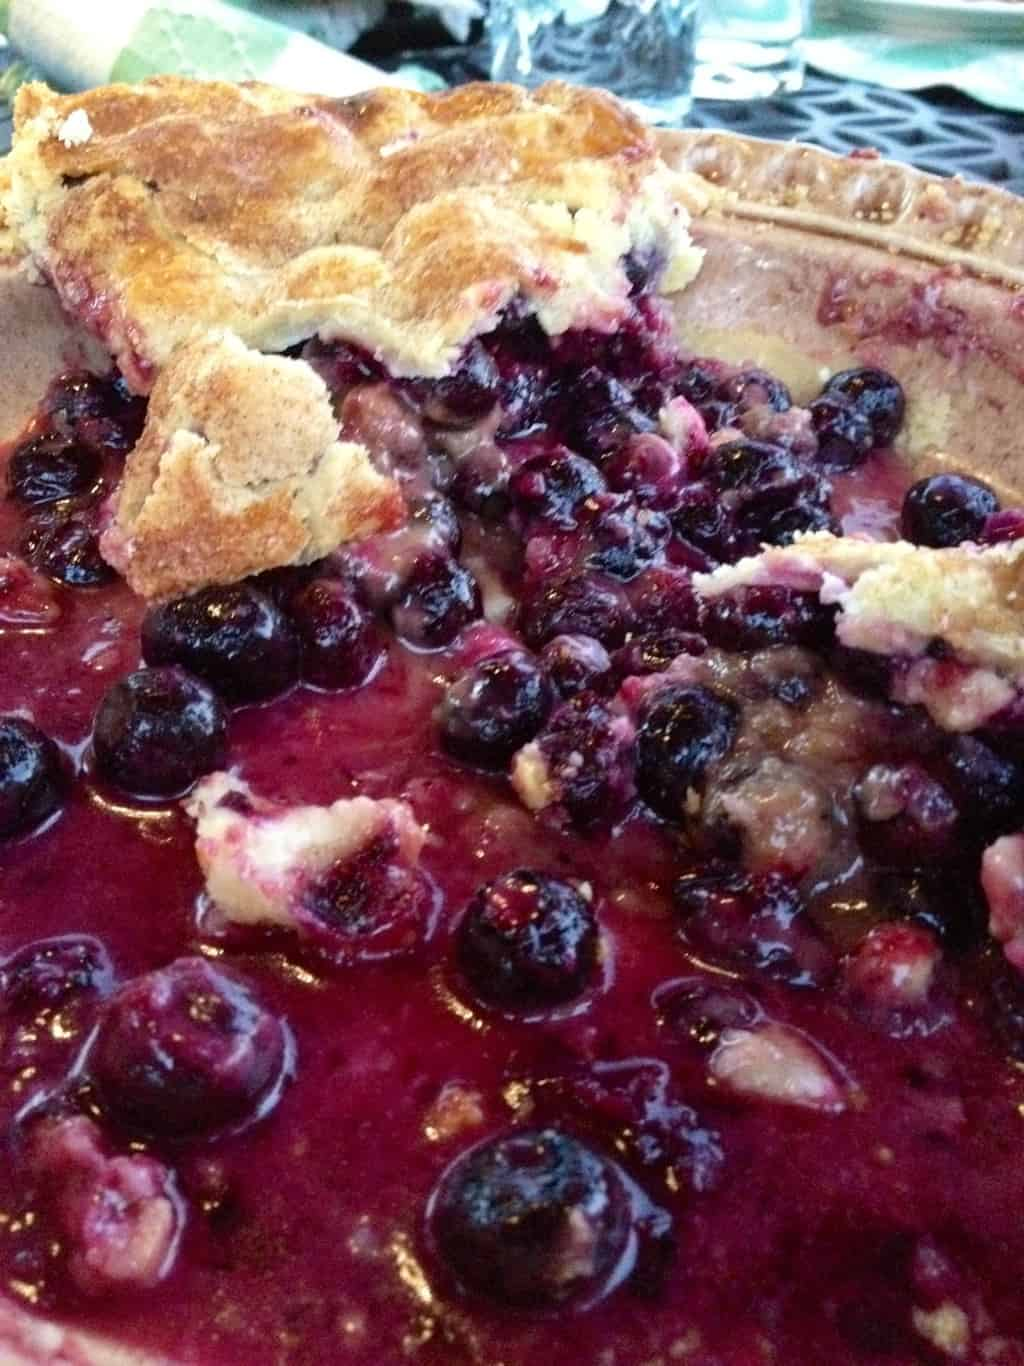 Auntie's Homemade Blueberry Pie & Perfect Crust